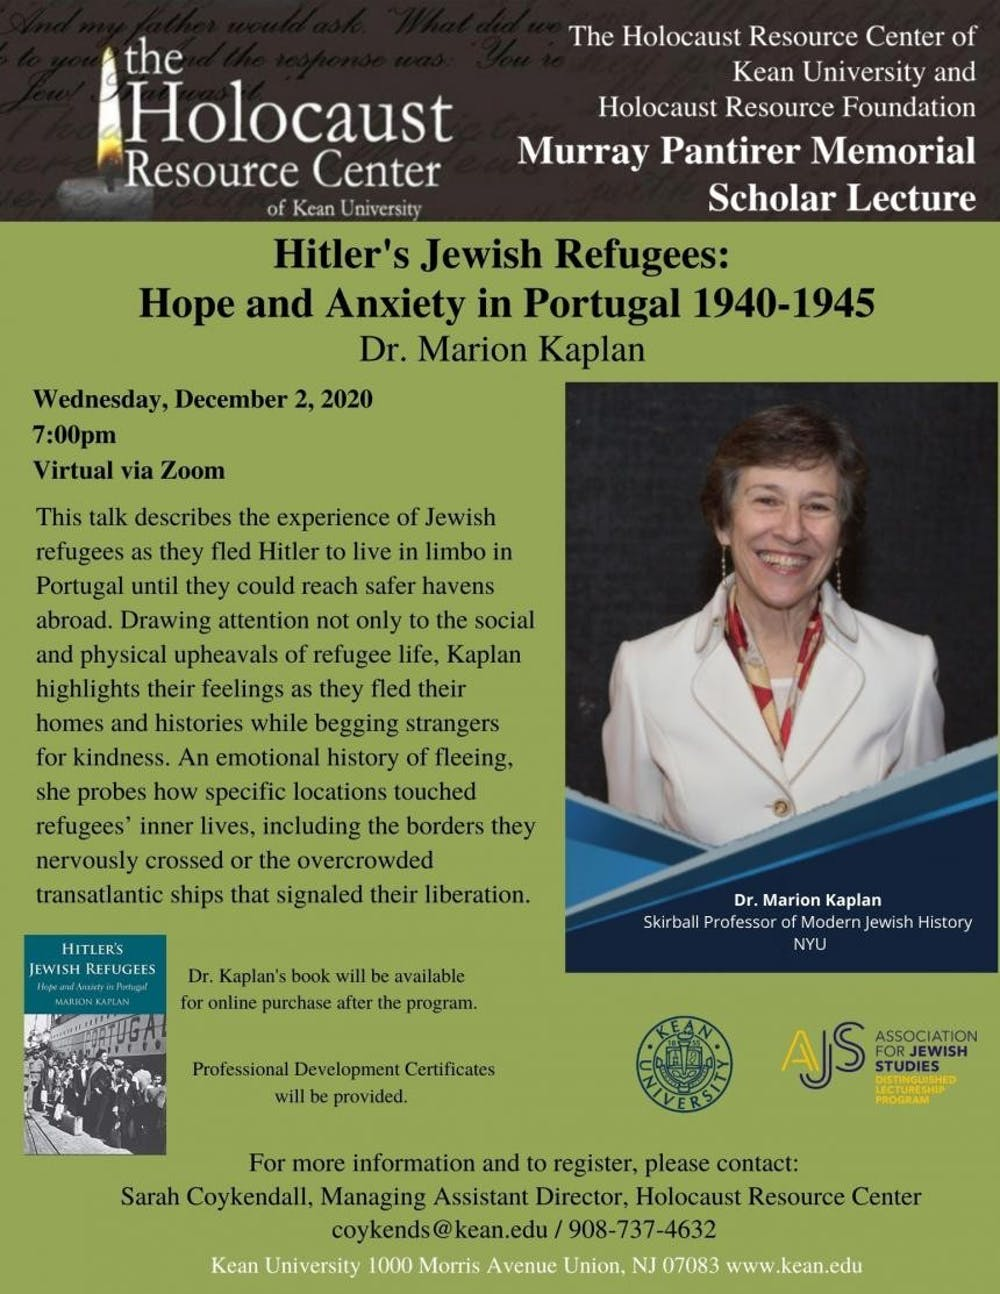 Hitler's Jewish Refugees: Hope and Anxiety in Portugal